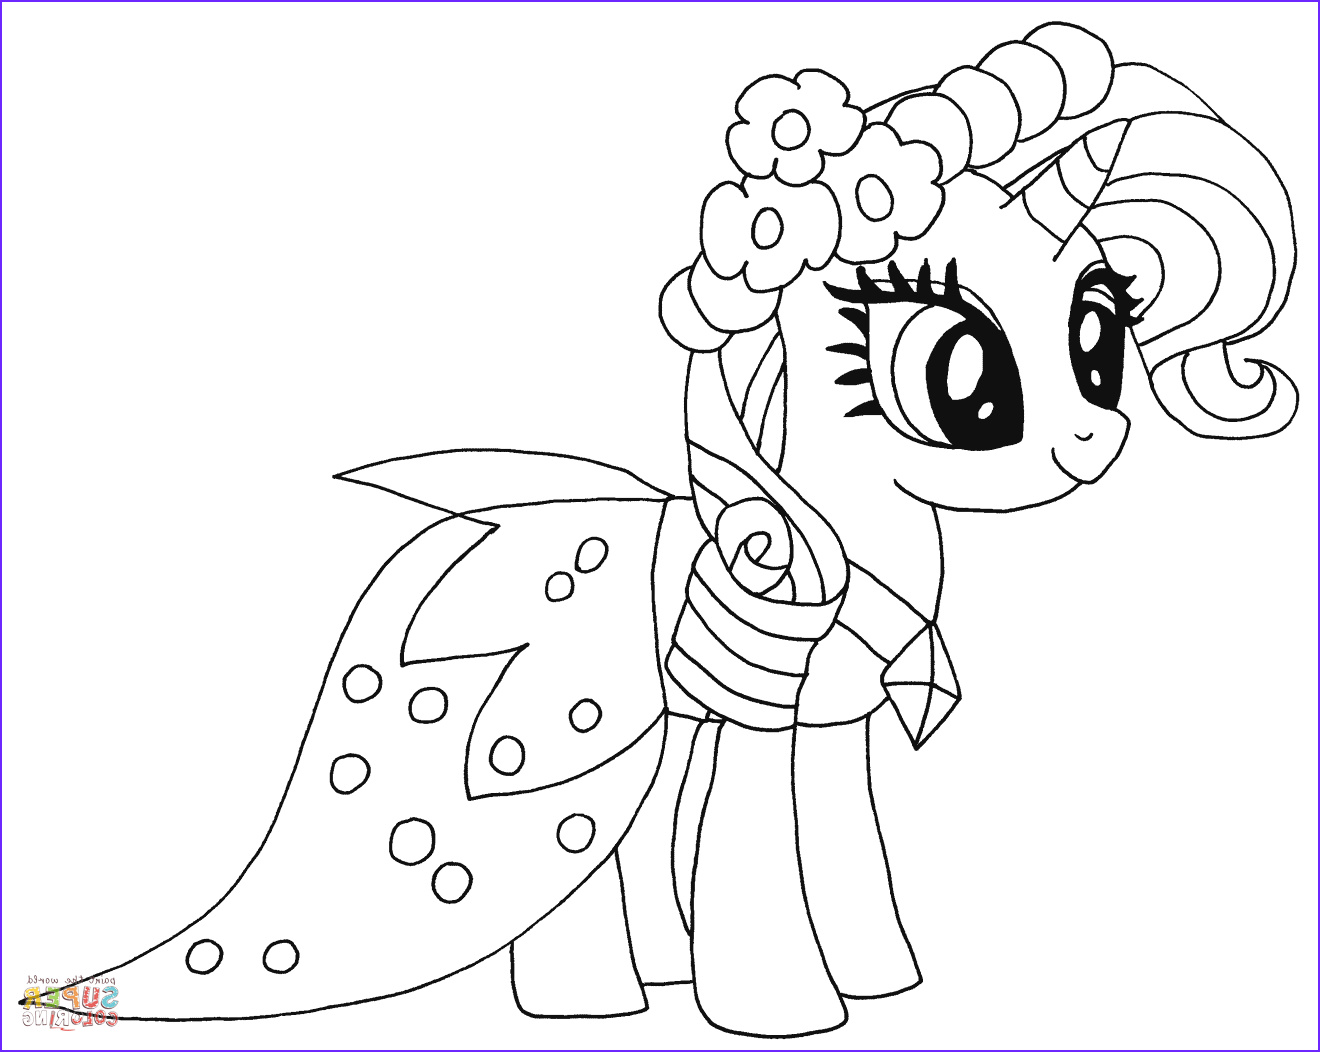 Pony Coloring Unique Collection Princess Rarity From My Little Pony Coloring Page My